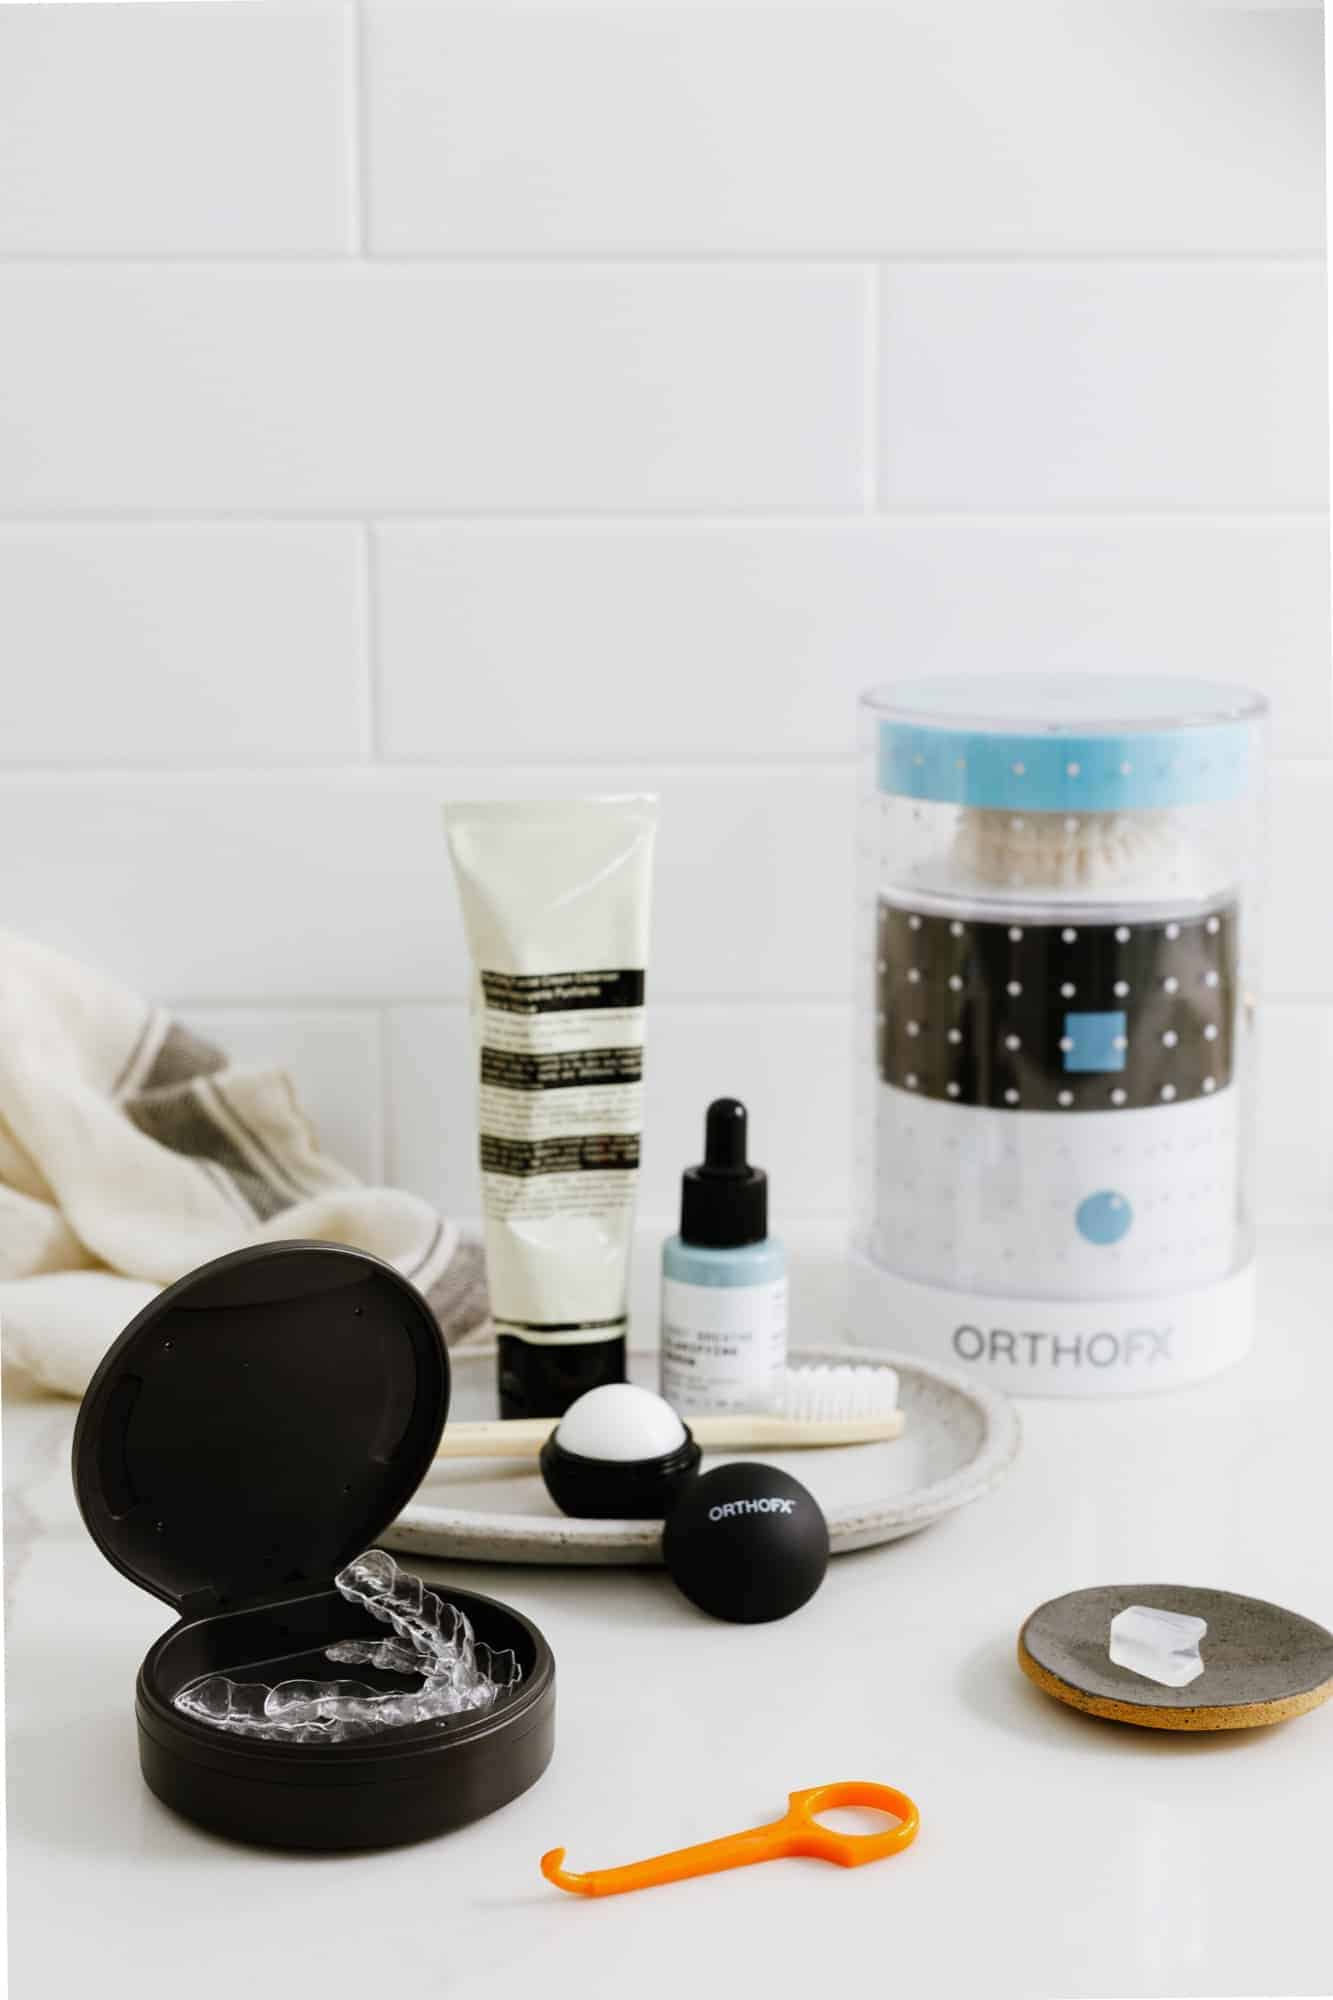 OrthoFx Products